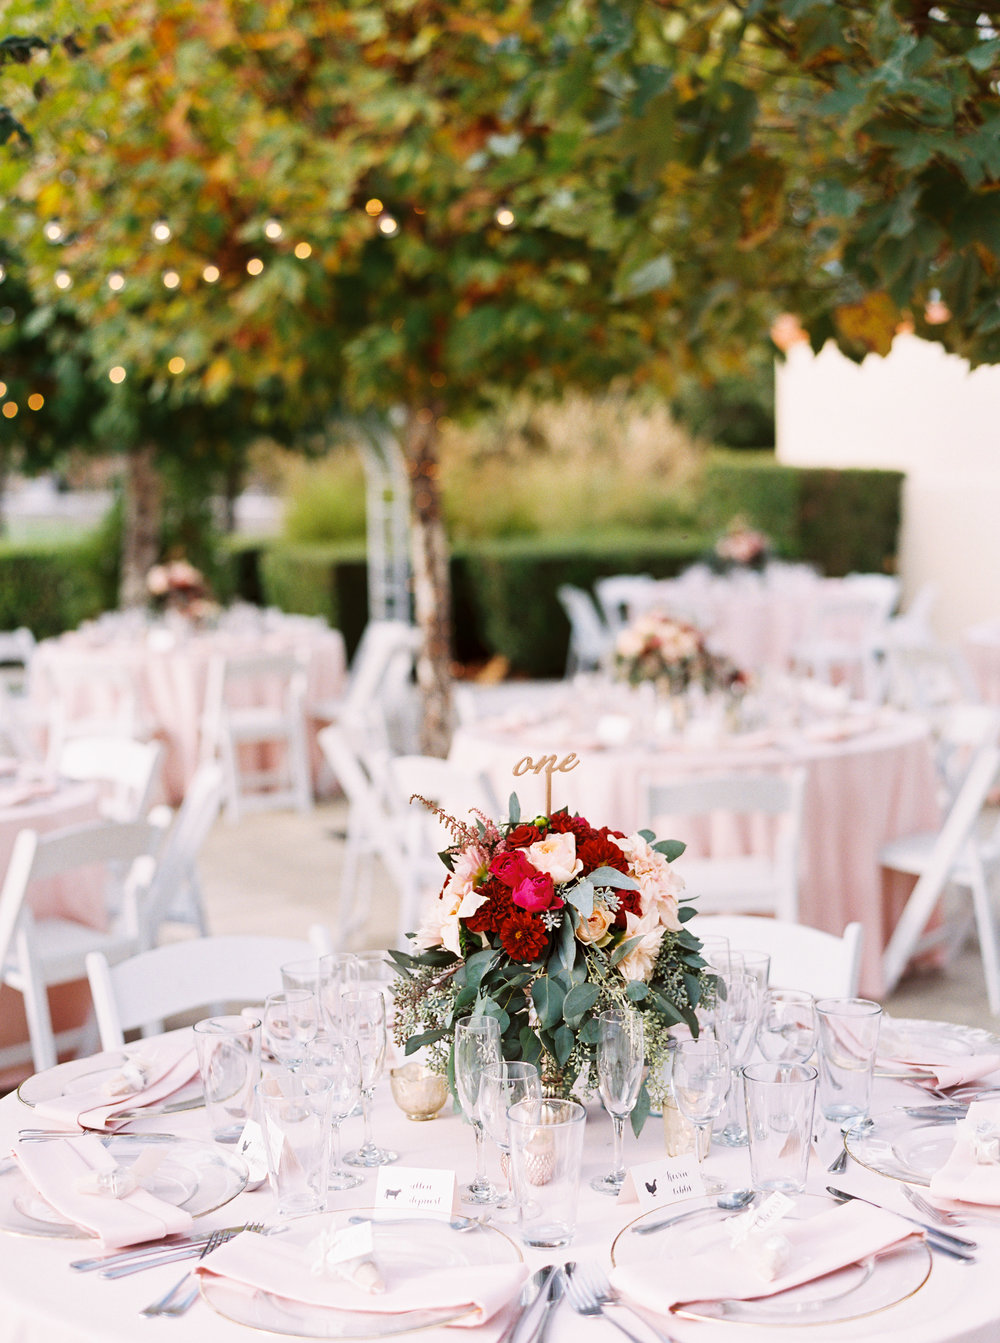 fall-inspired-wedding-at-vitners-golf-club-in-napa-california-121.jpg